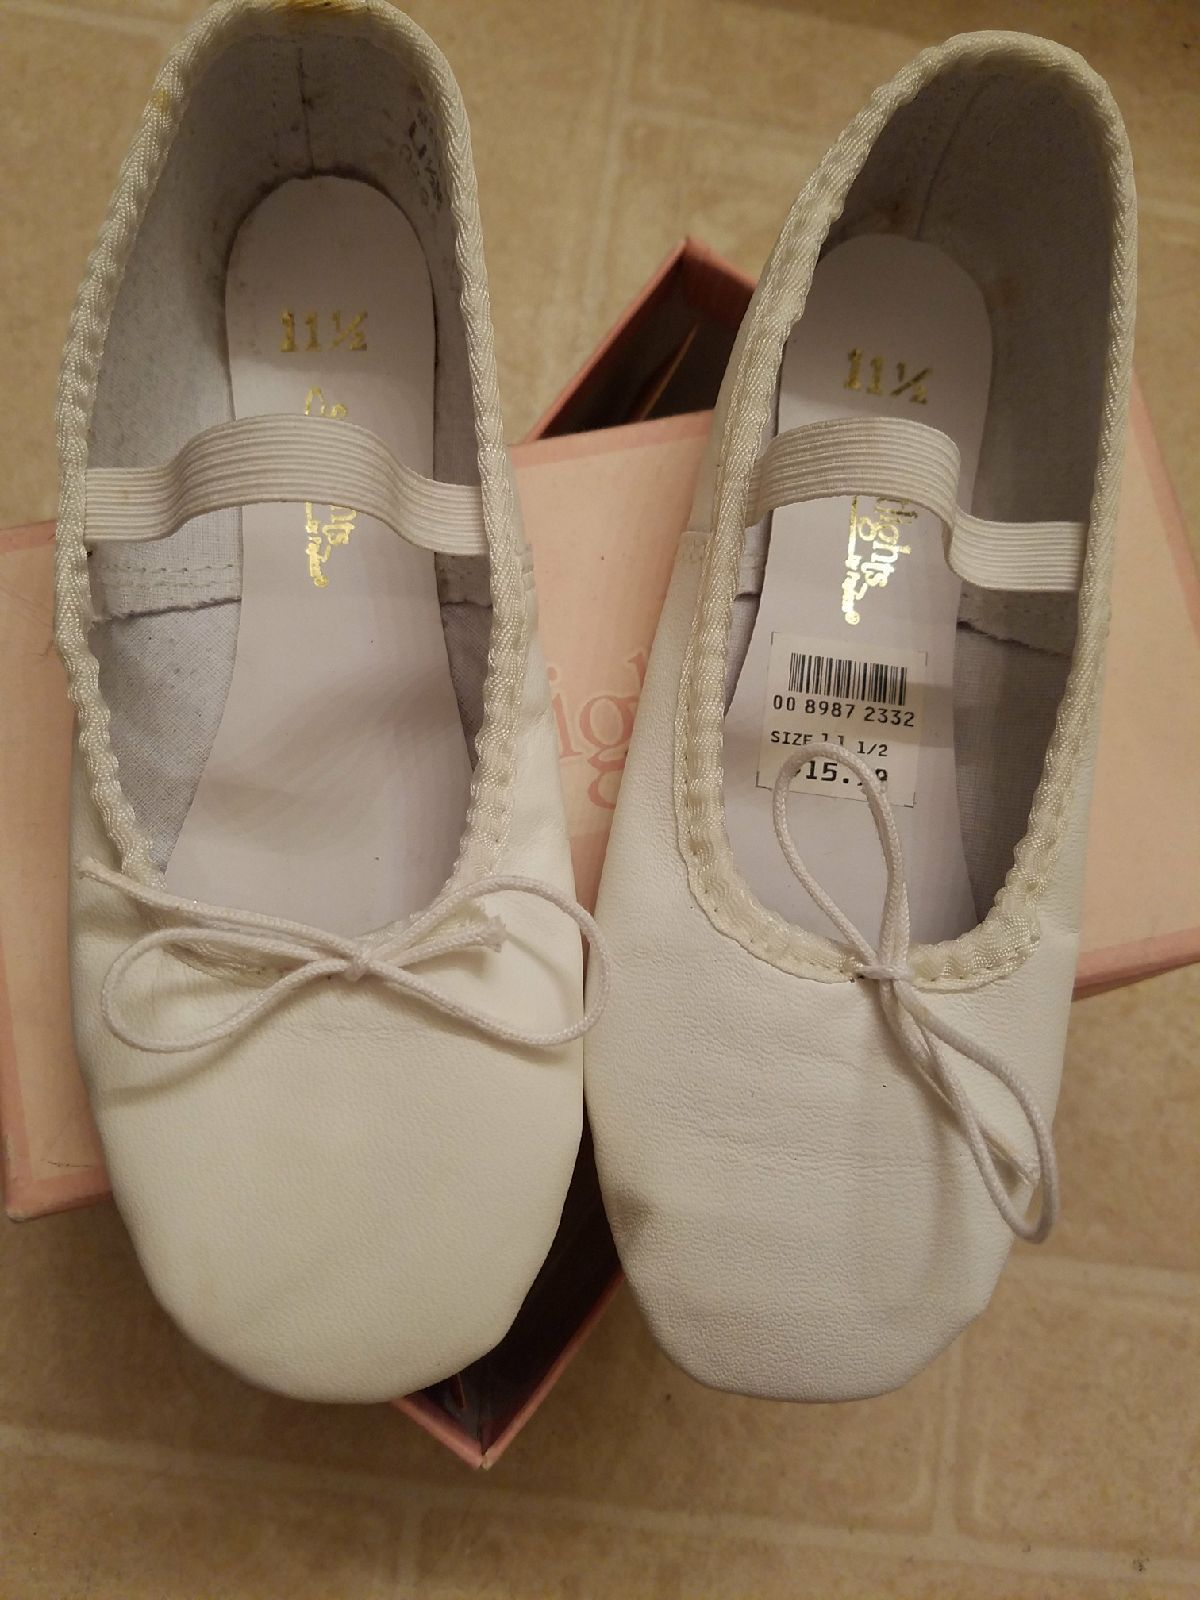 953585fb4151 NWB  New With Box Size  11.5 children s Brand  Spotlights by Payless Brand  New